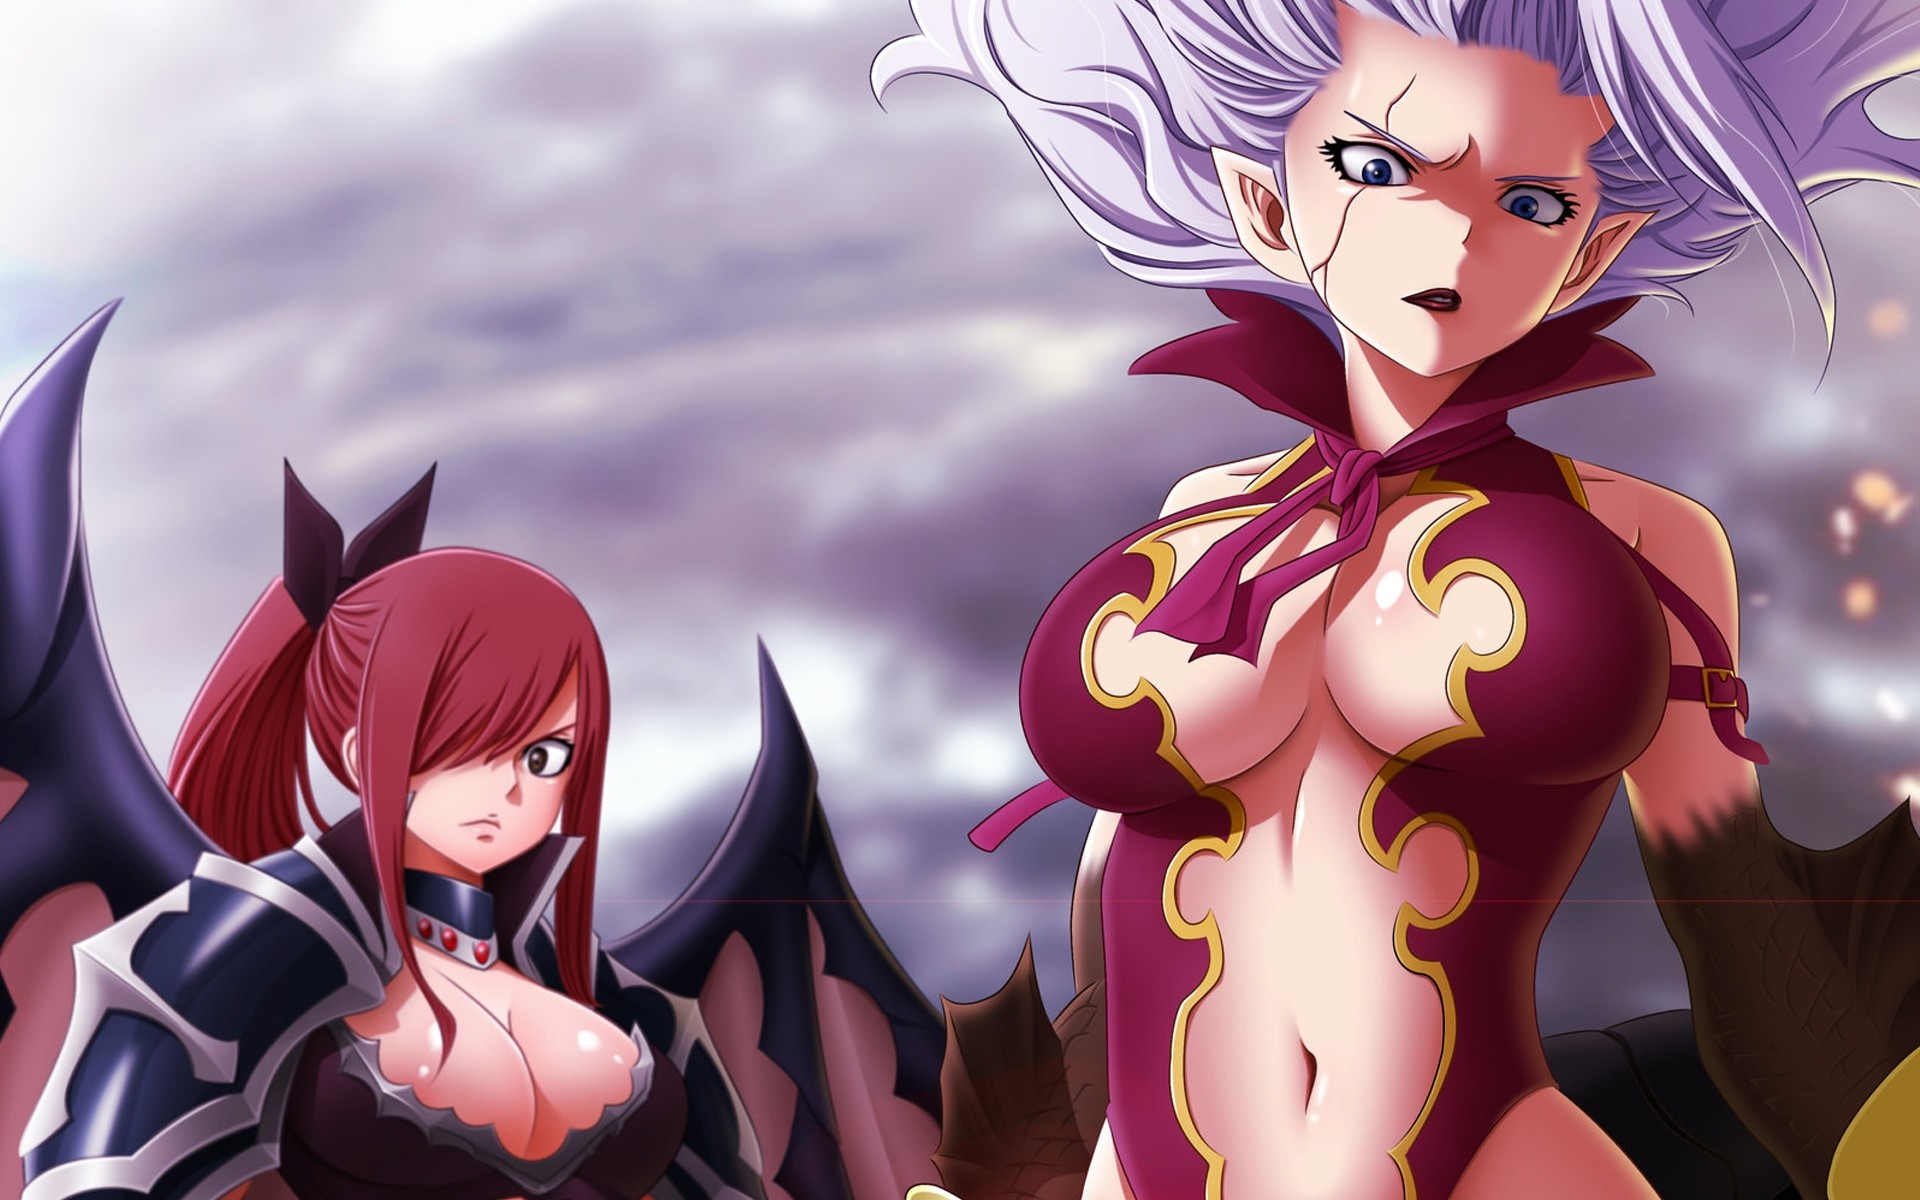 1920x1200 Erza and Mirajane, Wallpaper of Erza Scarlet and Demon Mirajane Strauss